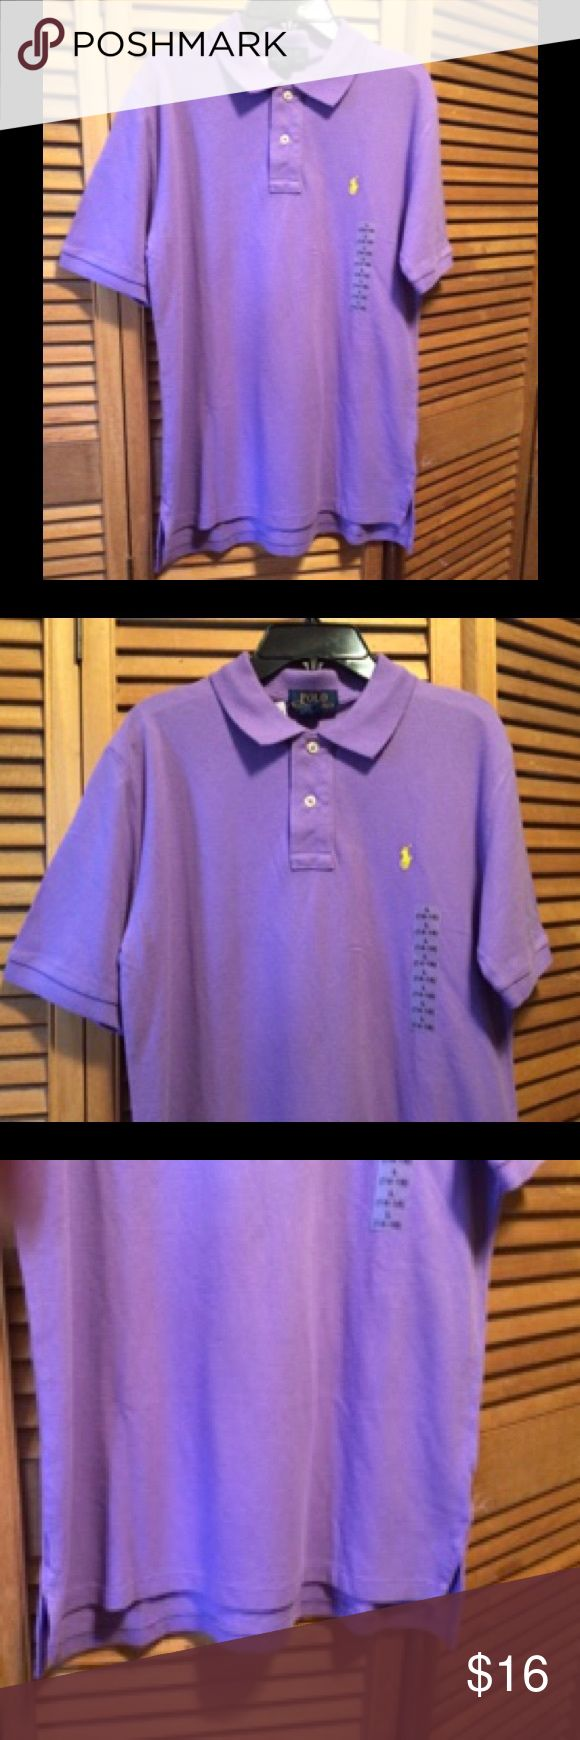 Ralph Lauren Purple Polo Shirt Purple polo shirt with yellow RL pony logo. Youth large 14-16. 100% cotton. NWT Ralph Lauren Shirts & Tops Polos